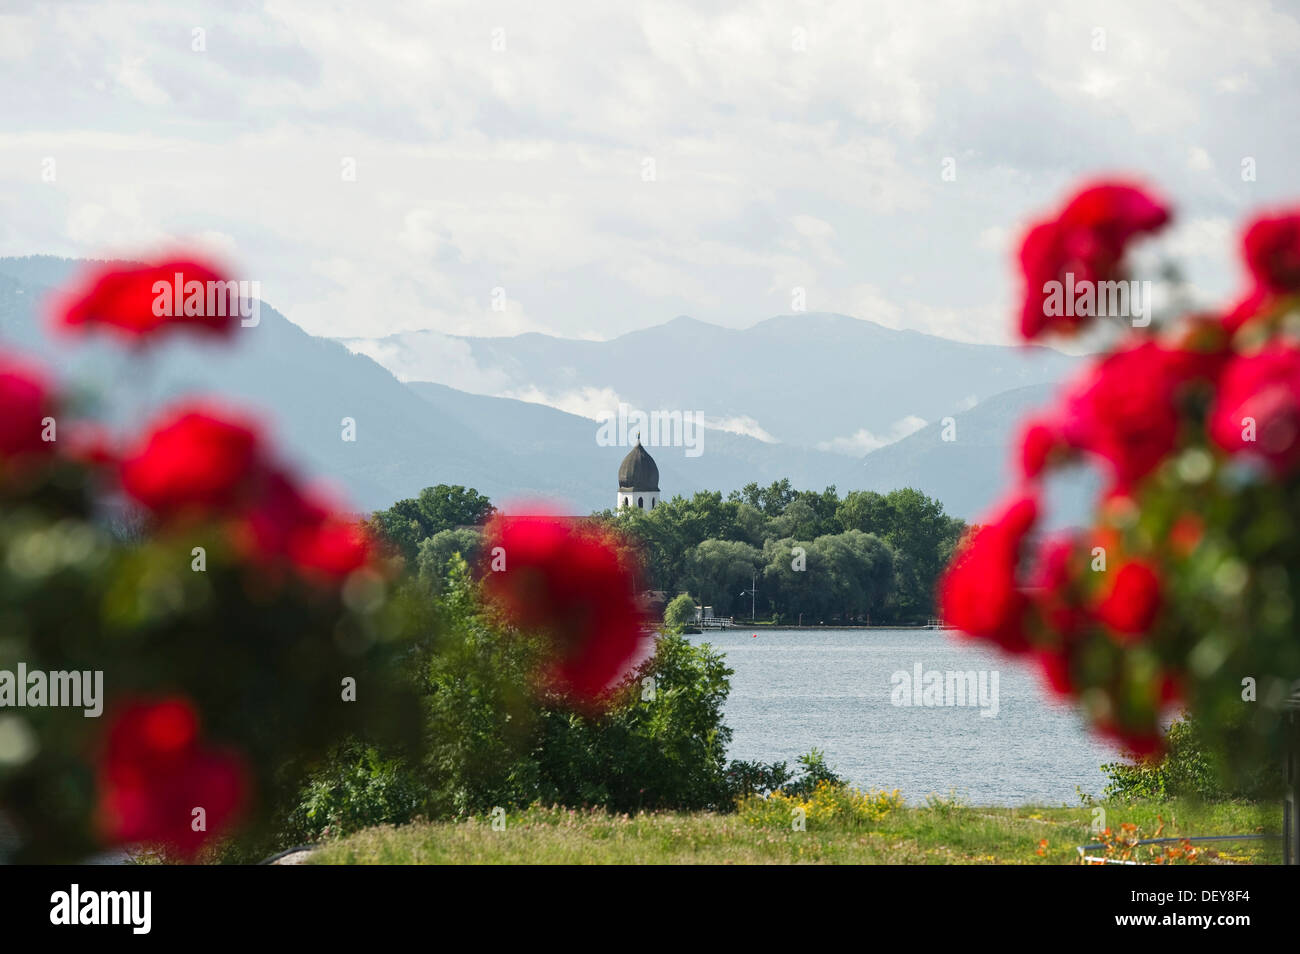 The island Frauenchiemsee or Fraueninsel, from Gstadt, Chiemsee Lake, Chiemgau region, Bavaria Stock Photo